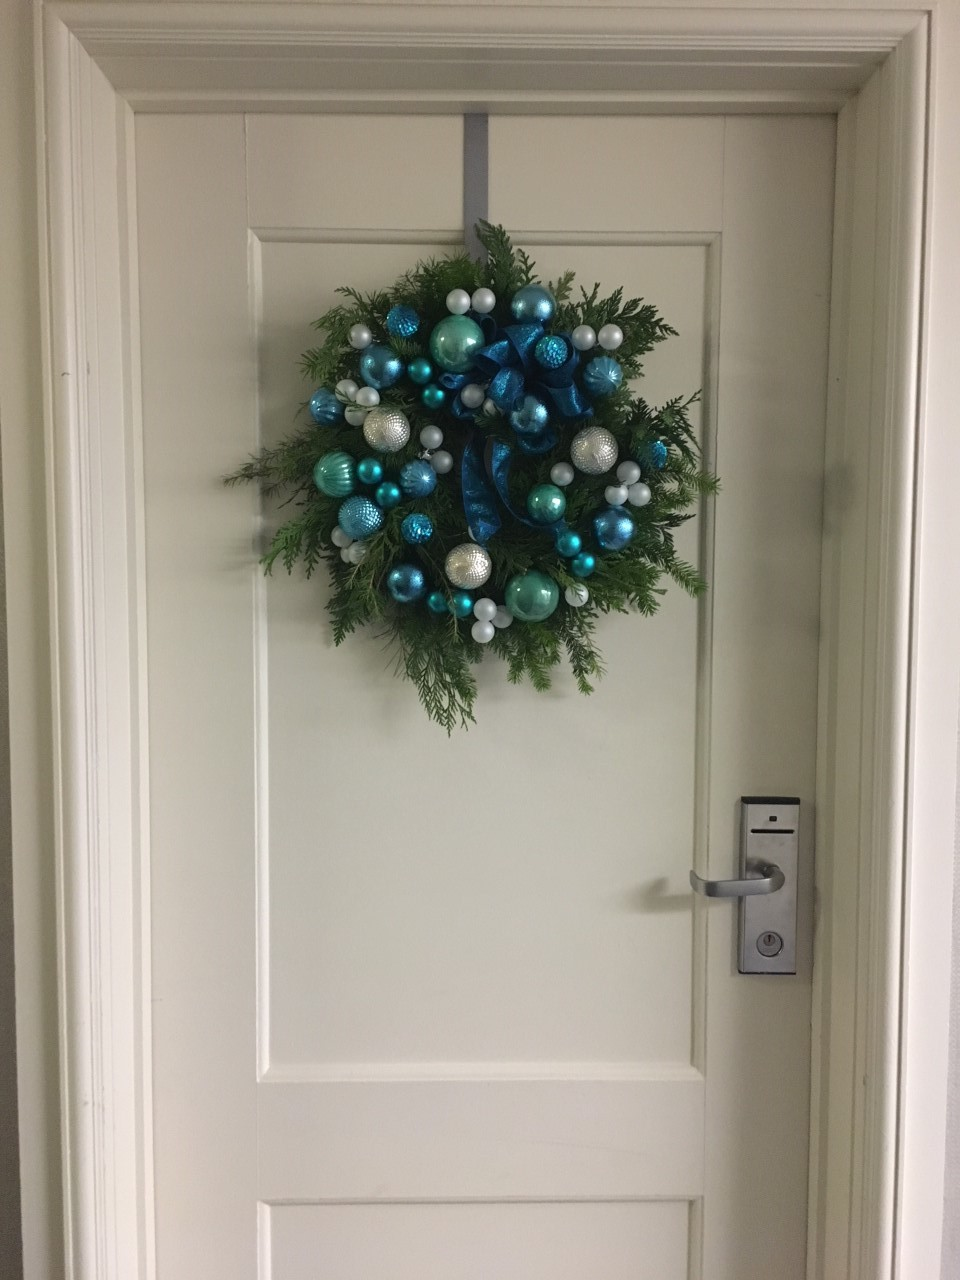 You won't believe your eyes when you open THIS door on Saturday!